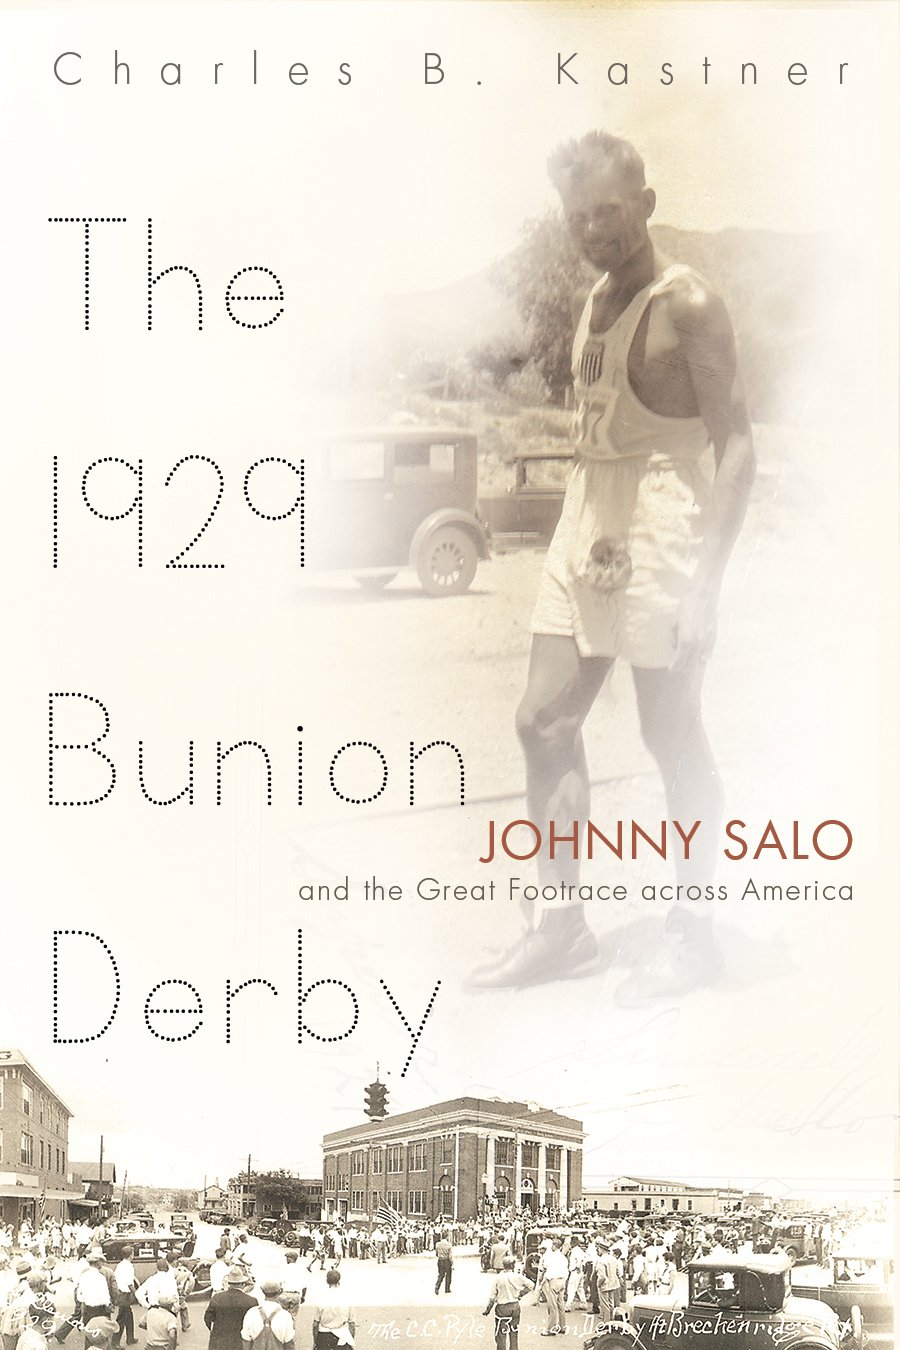 The 1929 Bunion Derby: Johnny Salo and the Great Footrace across America (Sports and Entertainment) PDF ePub ebook